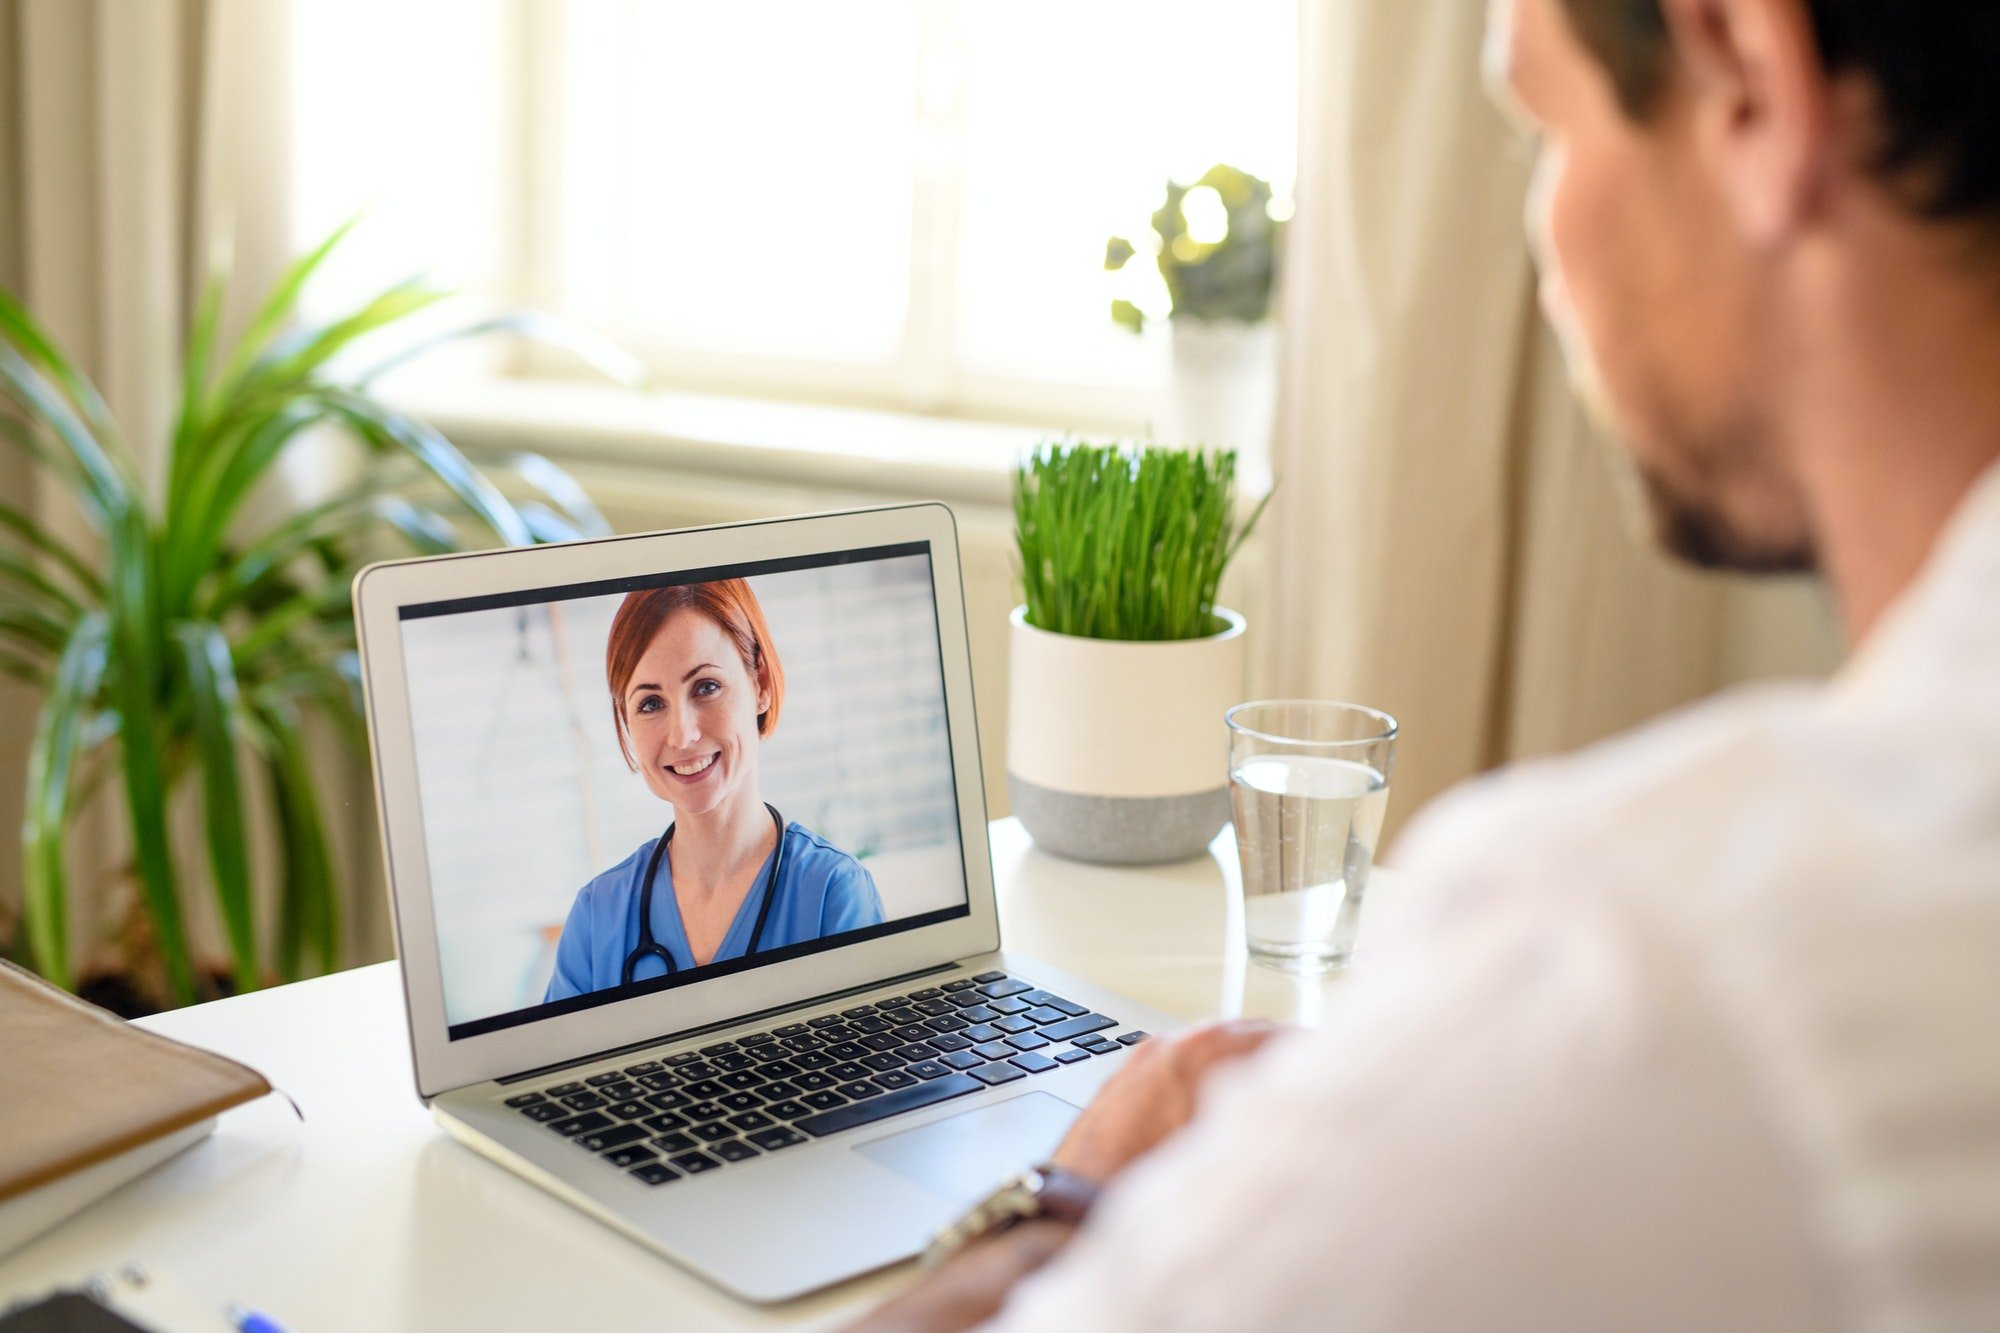 Man having video call with doctor on laptop at home, online consultation concept